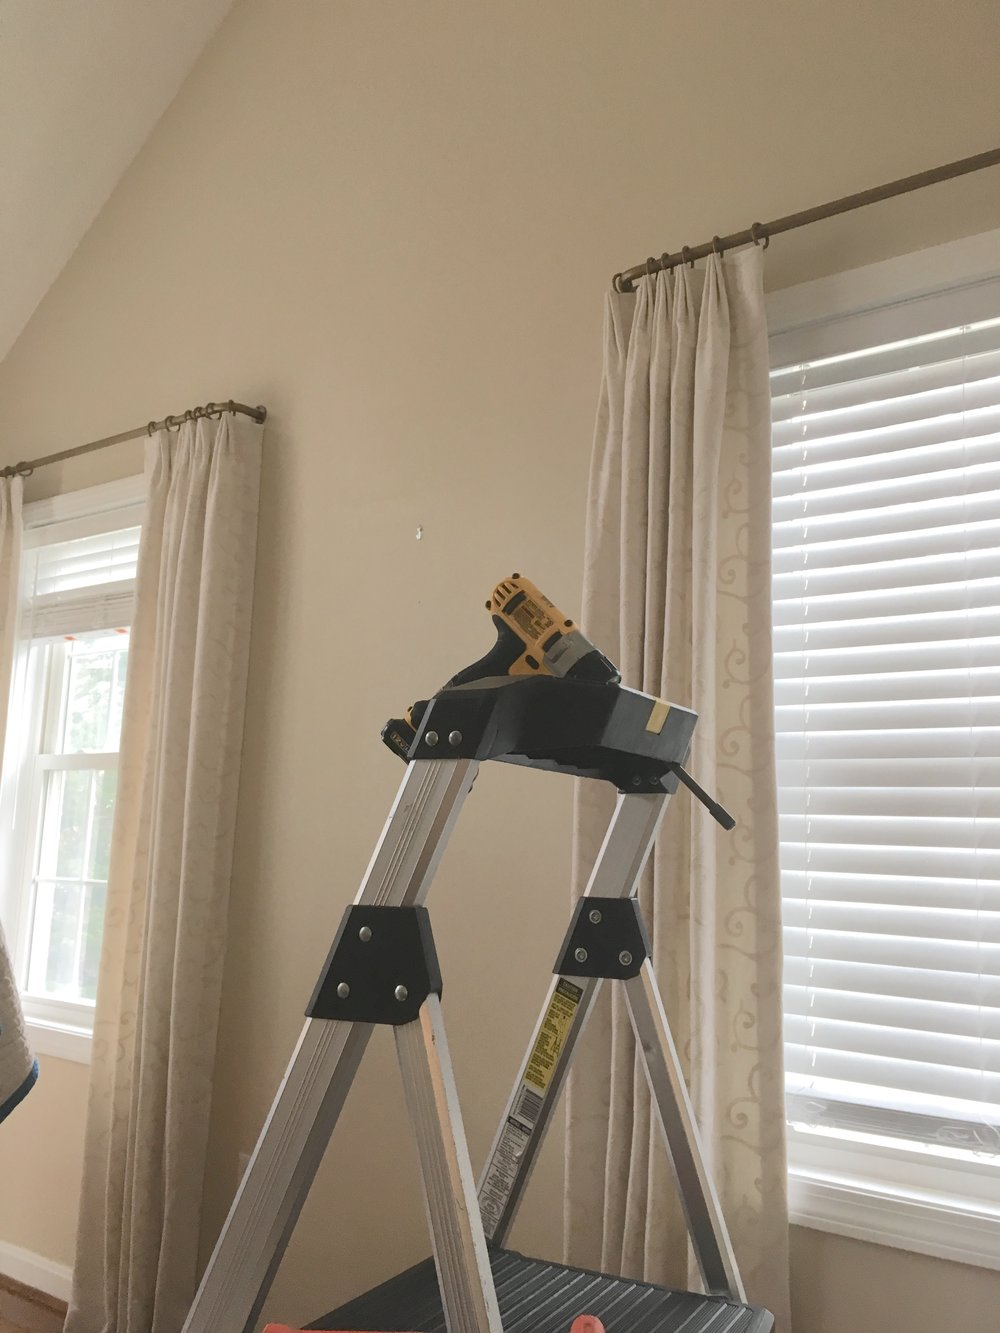 This is one of our drapery installations in progress. For this project we used custom French style rods that curve back to the wall. The rods are wider than the window casing and mounted level with the top of the wall where it meets the vaulted angled ceiling.